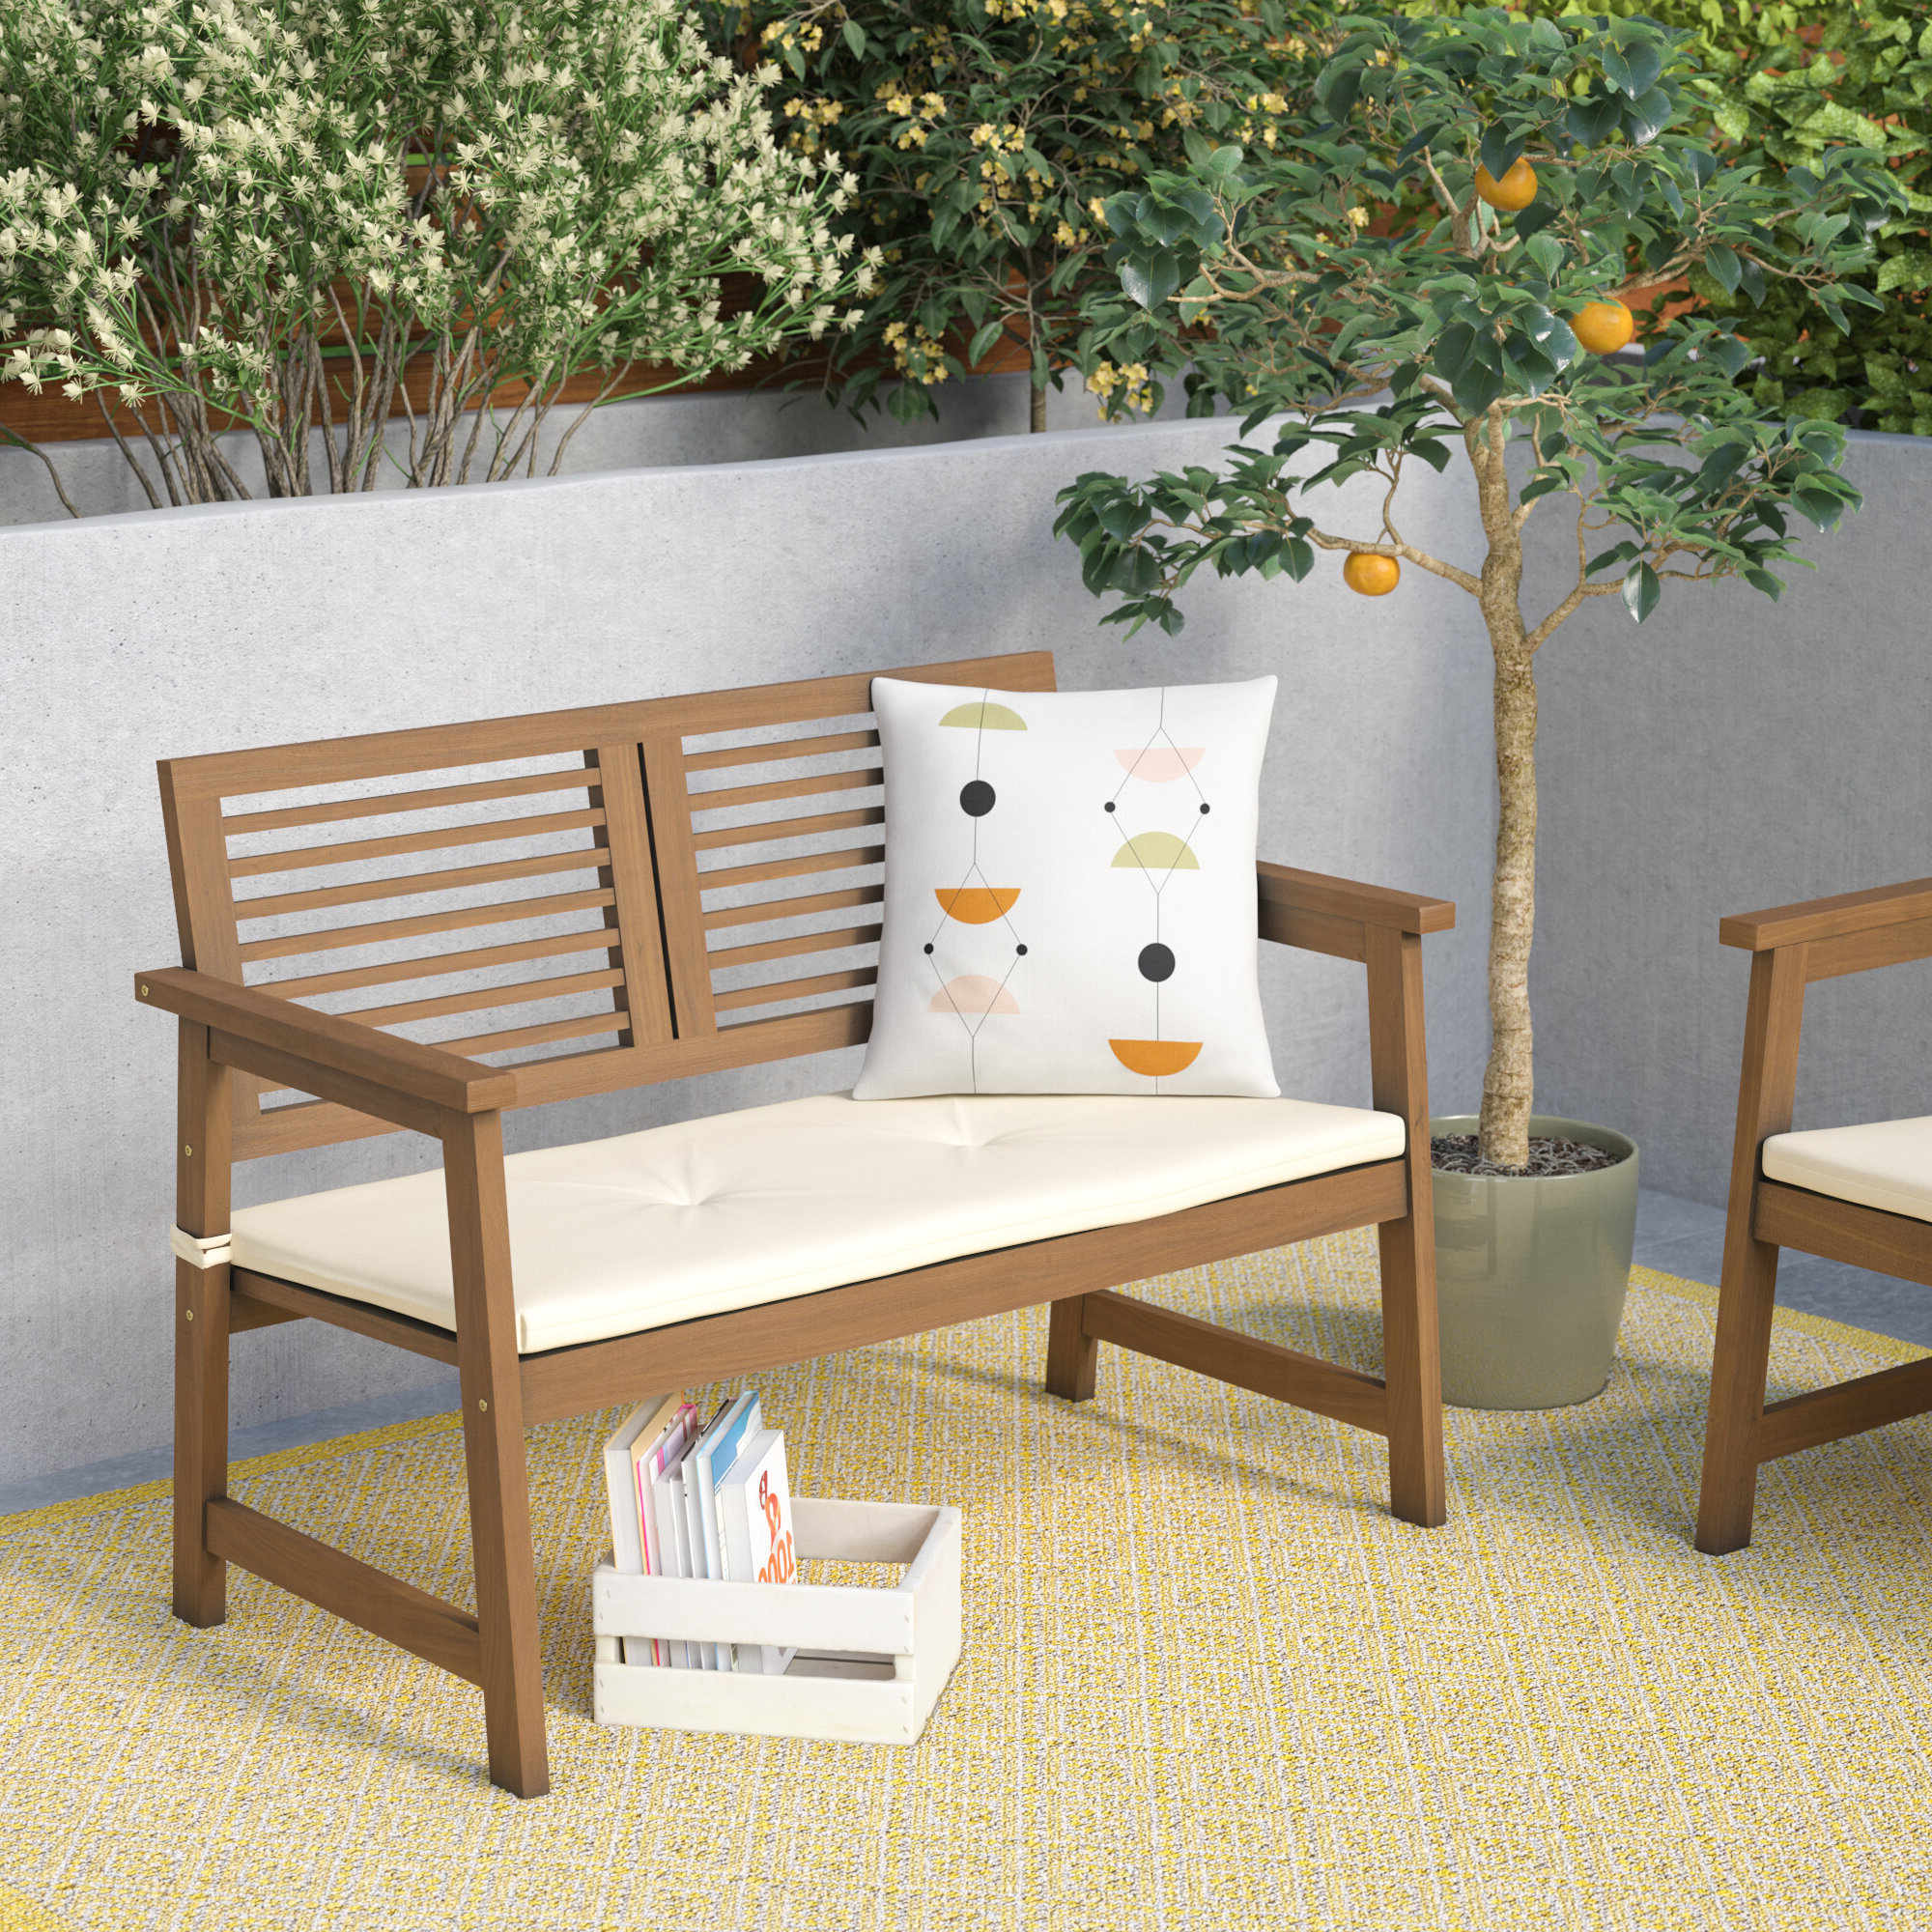 Arianna Meranti Wooden Garden Bench With Well Known Shelbie Wooden Garden Benches (View 12 of 30)